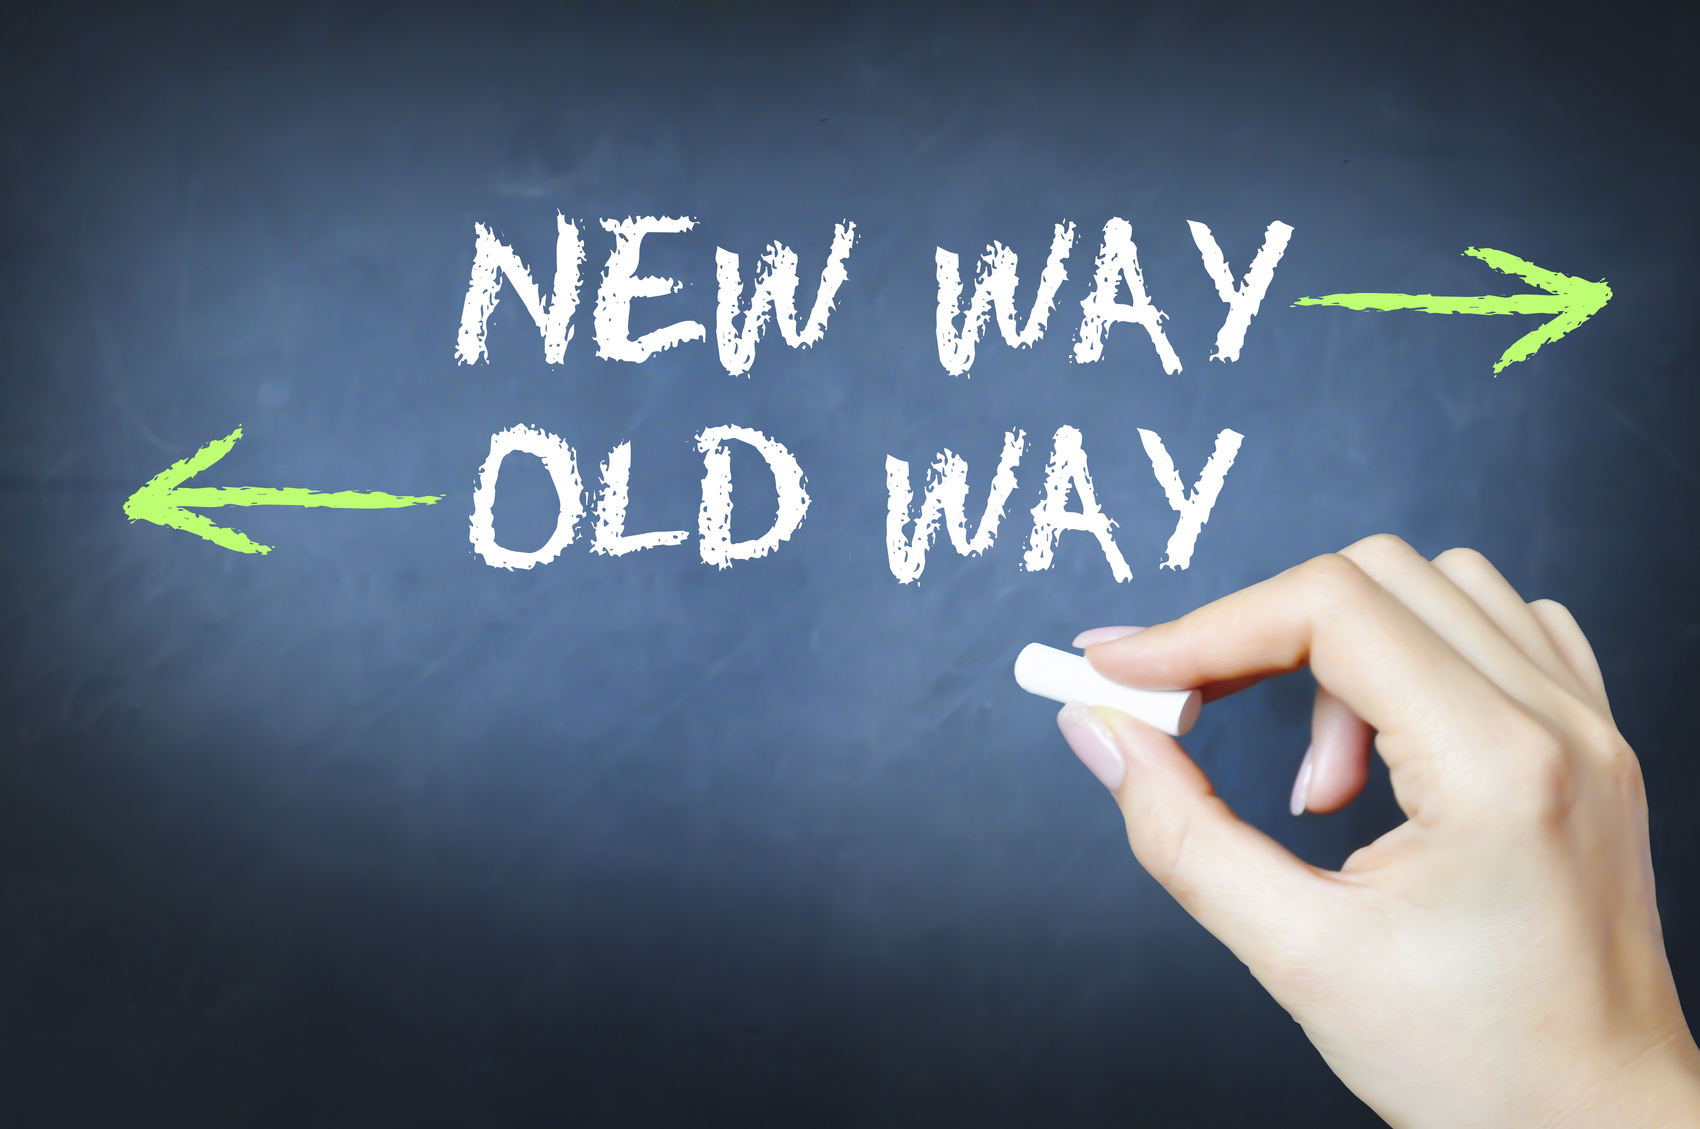 hight resolution of new way versus the old way concept